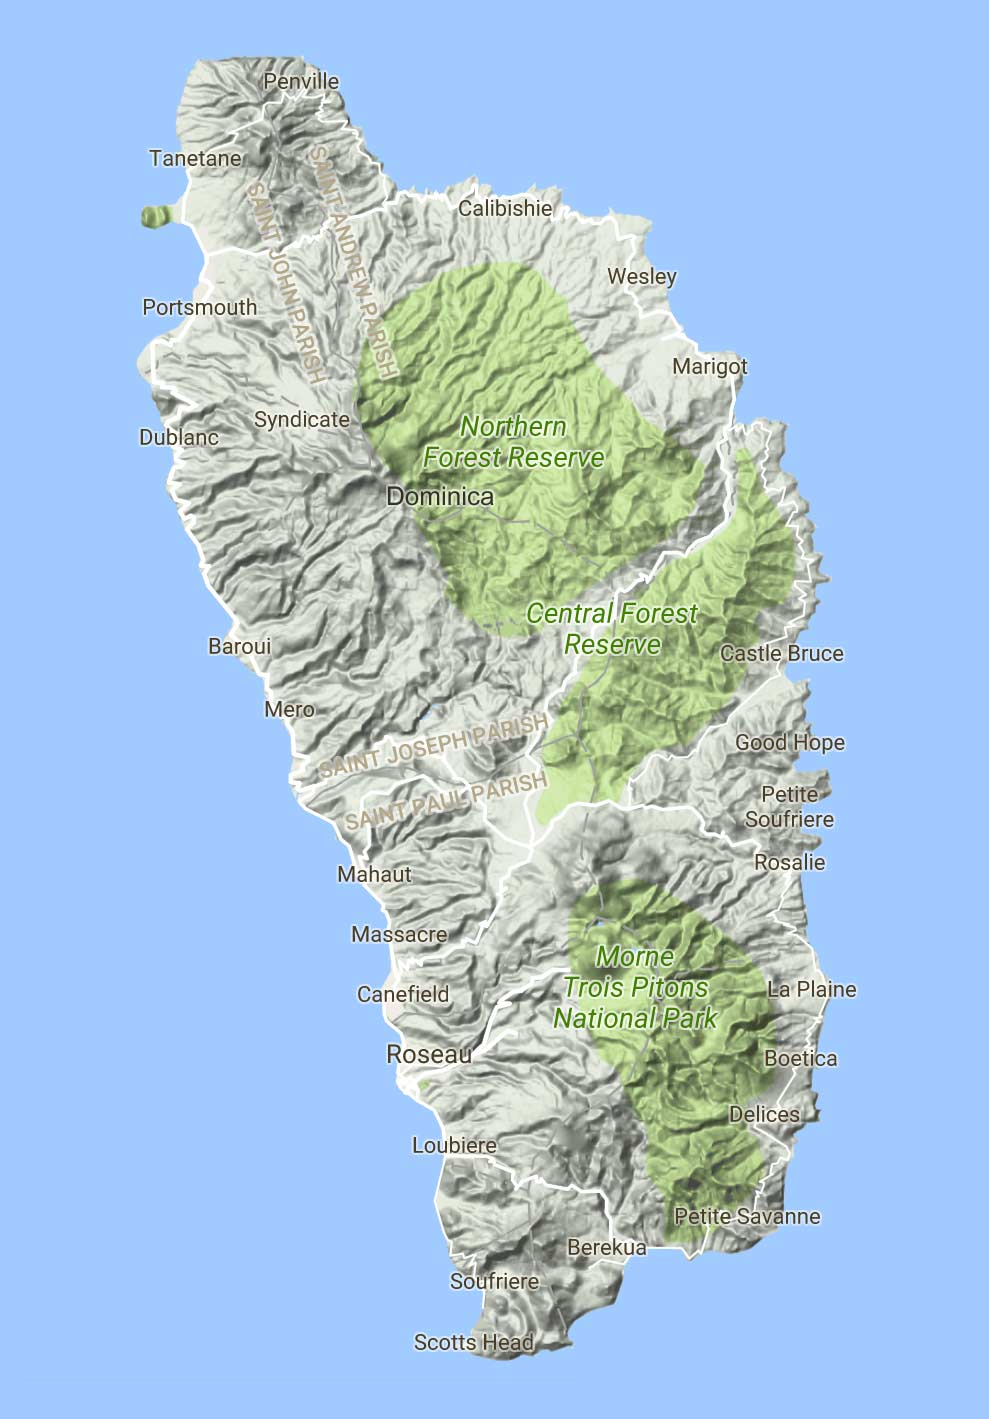 Topographic map of Dominica